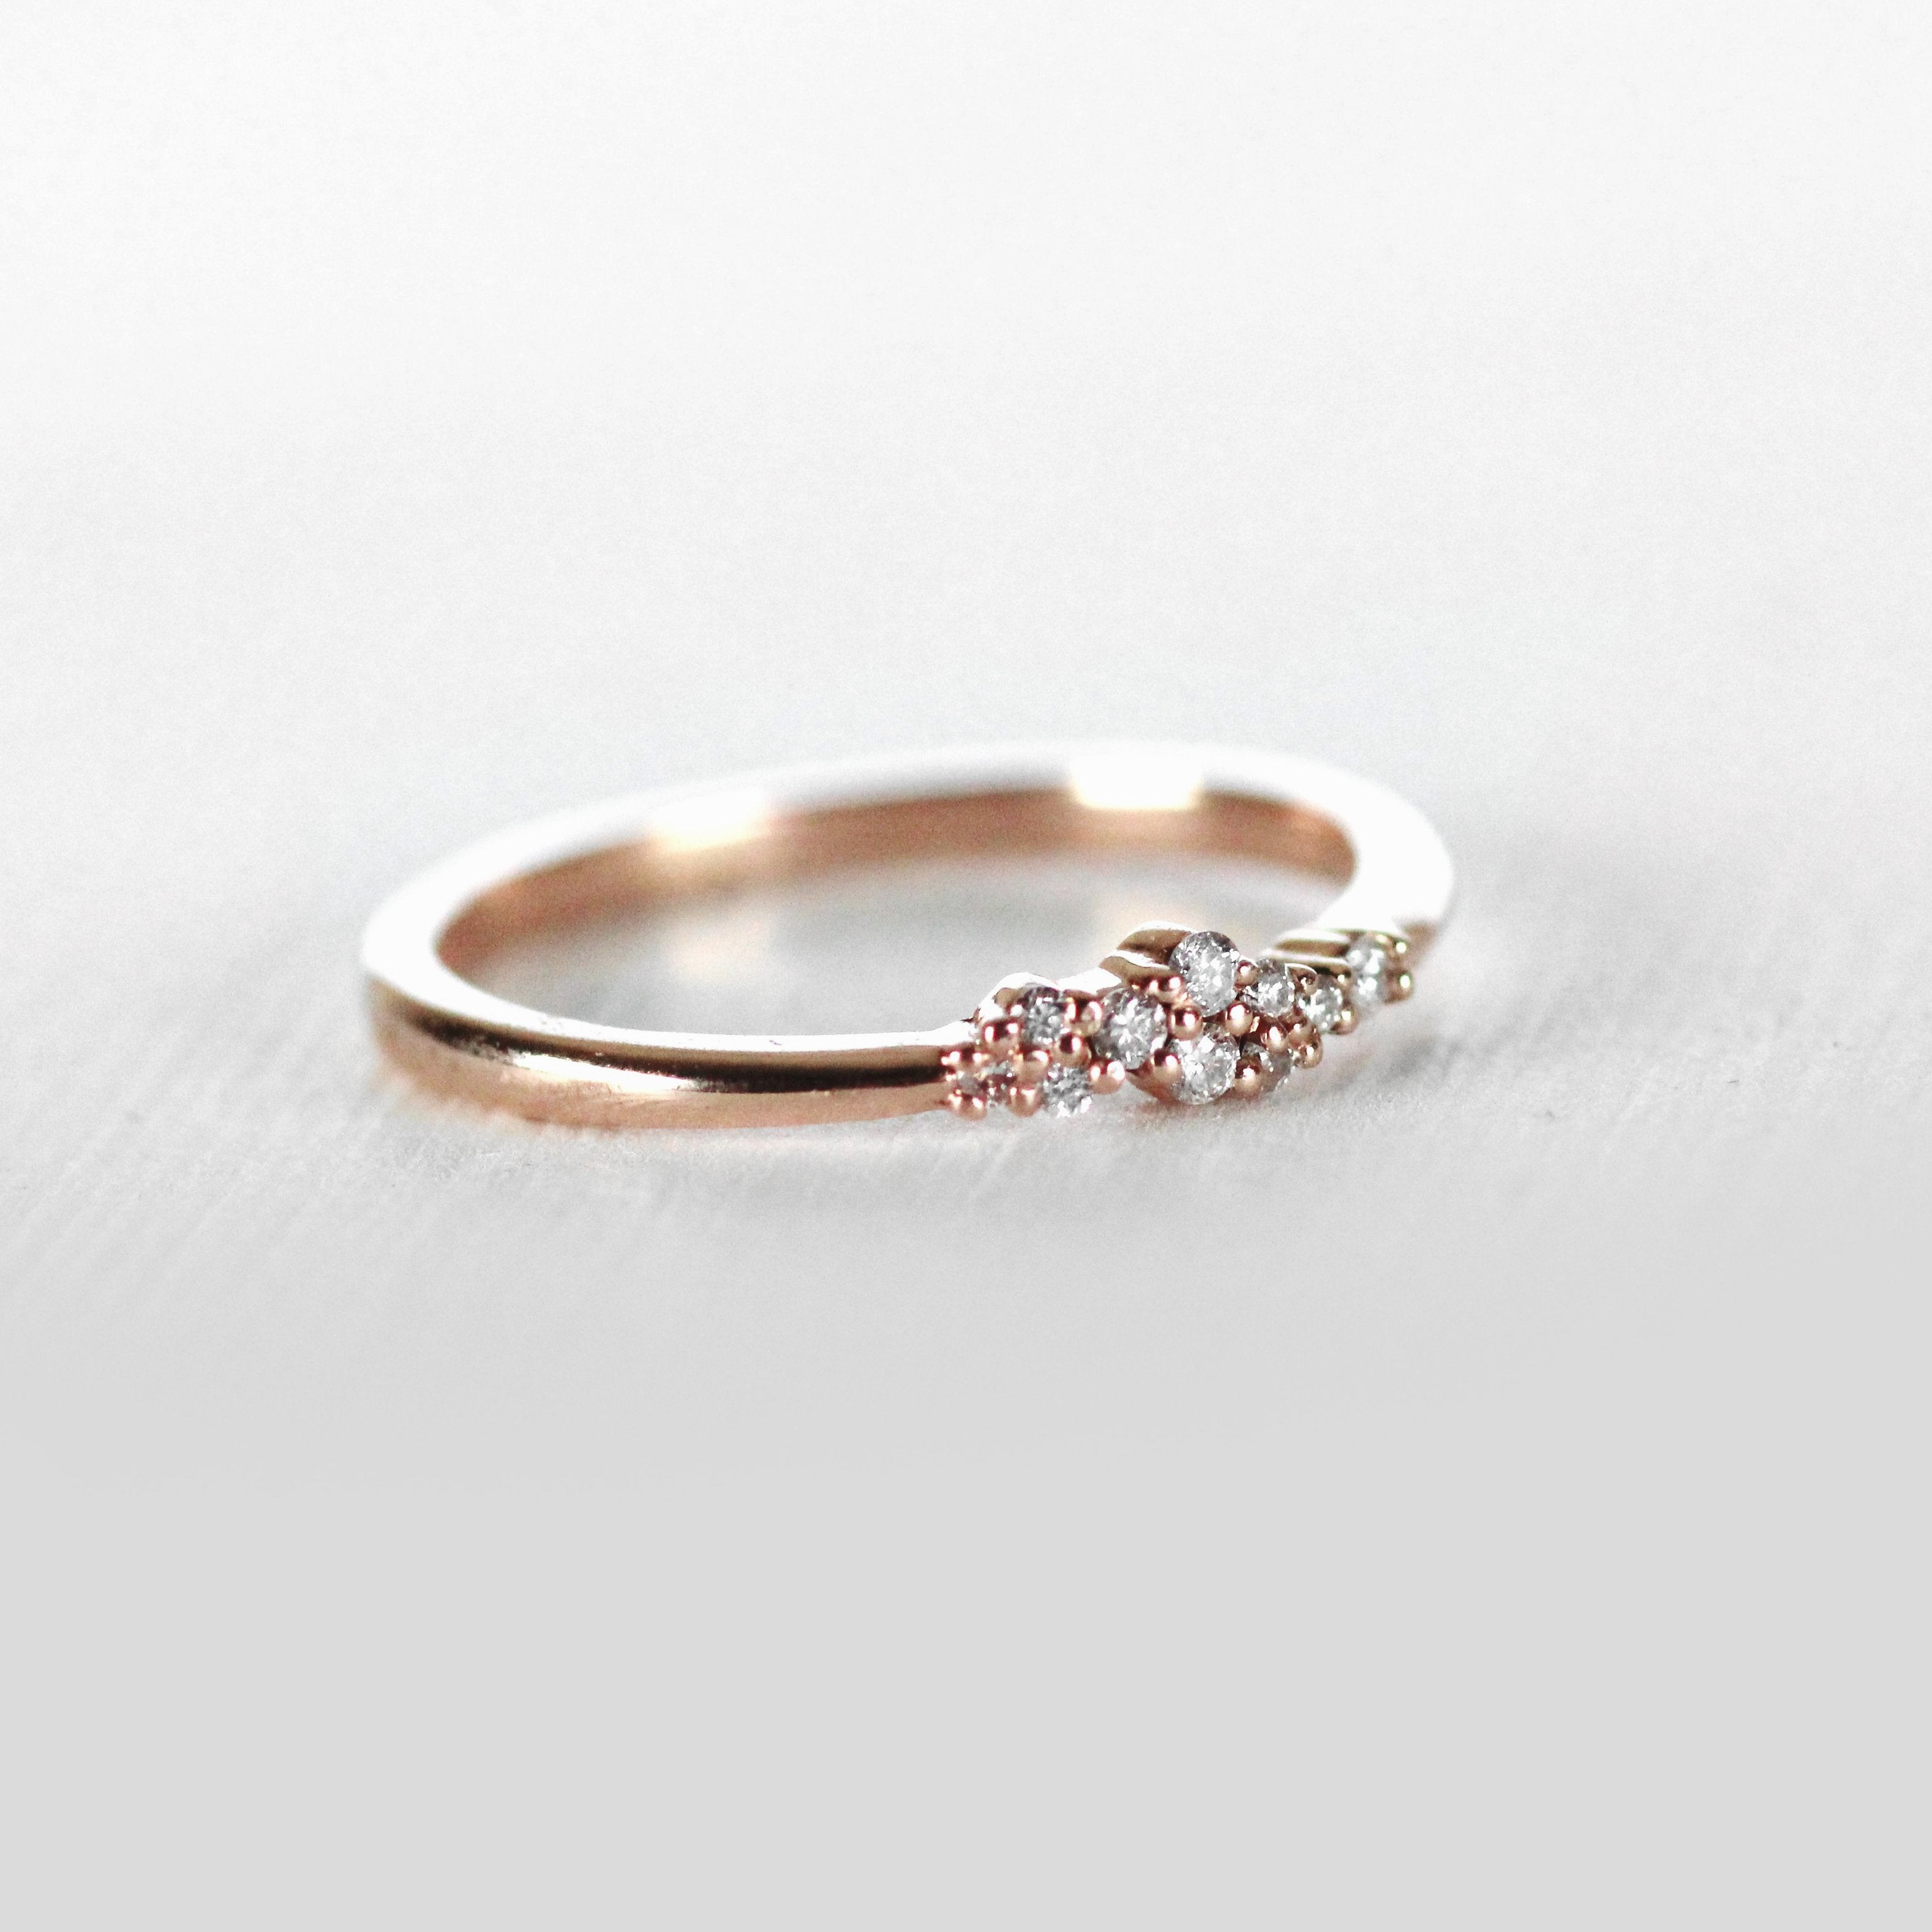 Fiona - Cluster style diamond band - Salt & Pepper Celestial Diamond Engagement Rings and Wedding Bands  by Midwinter Co.